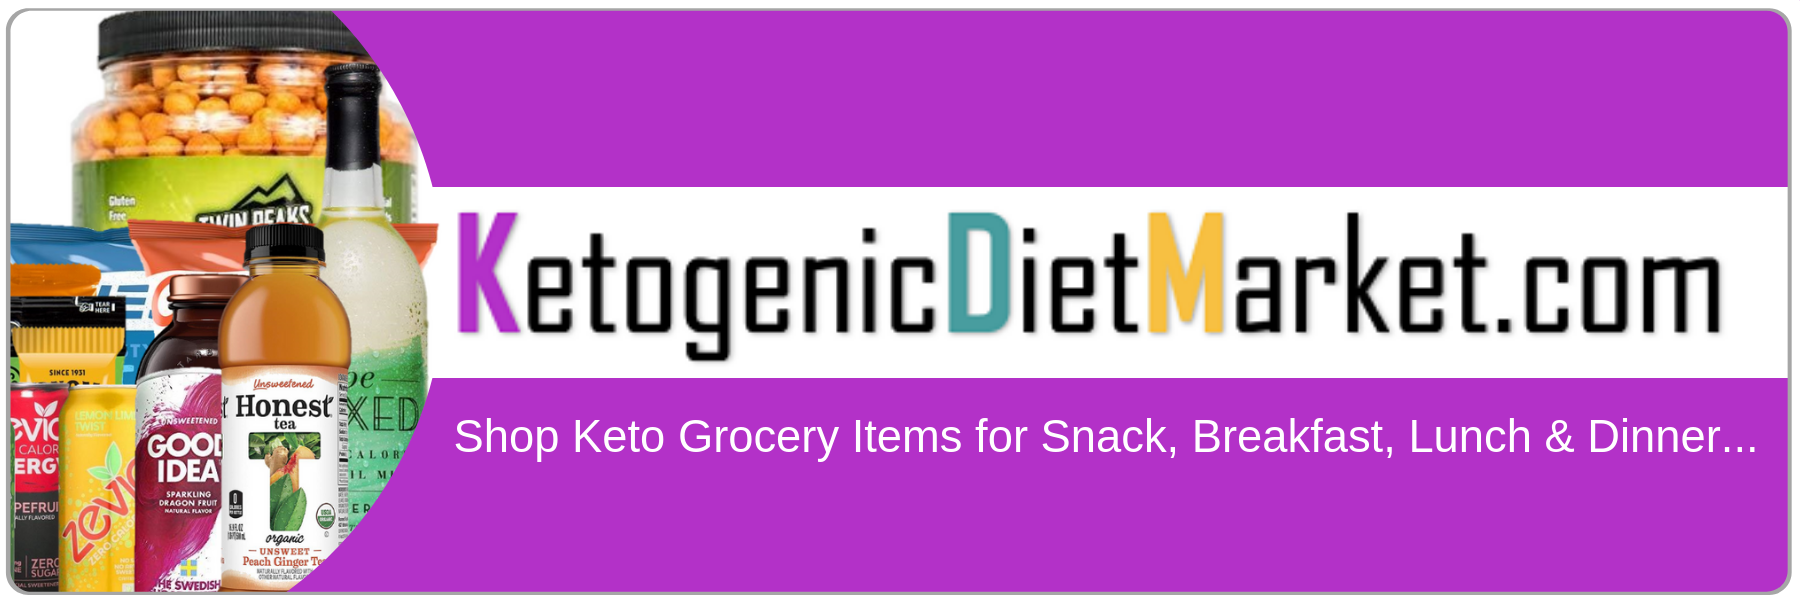 Shop Keto Grocery Items for Snack, Breakfast, Lunch & Dinner...